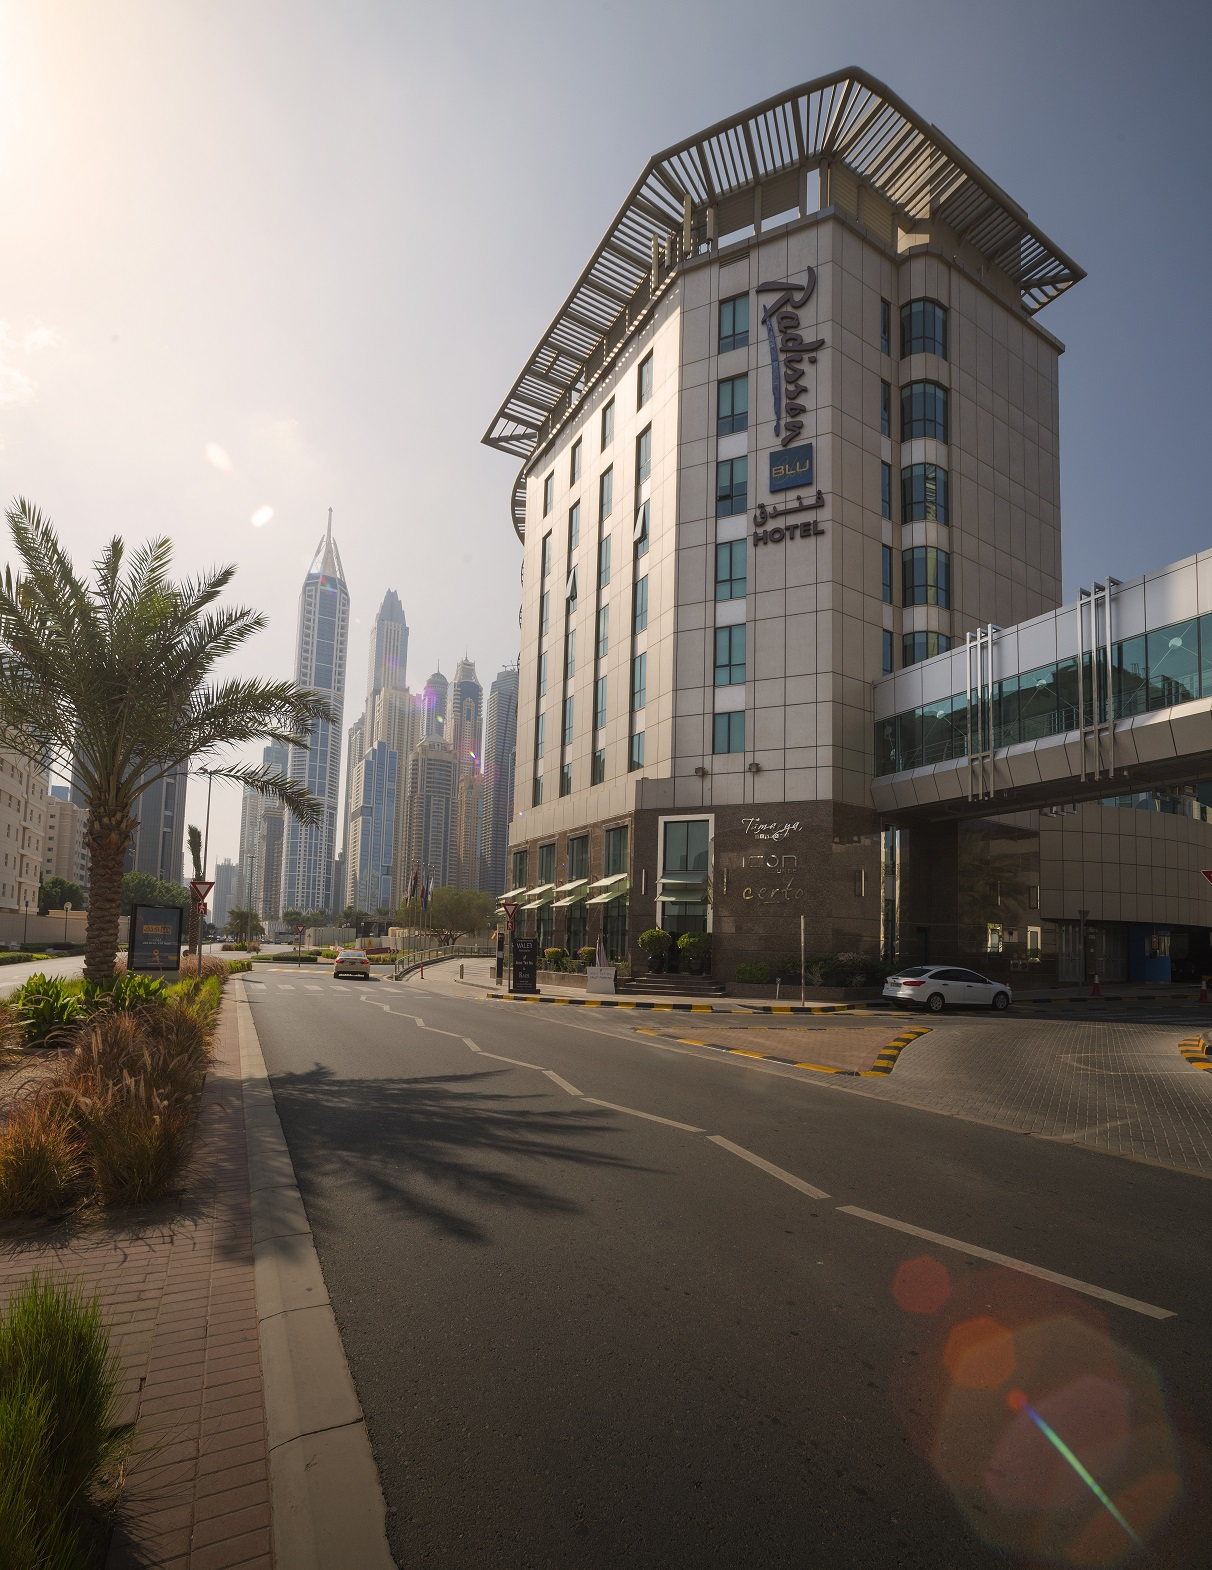 https://www.hotelsbyday.com/_data/default-hotel_image/3/15045/radisson-blu-dubai-media-city-ssnnas-city.jpg